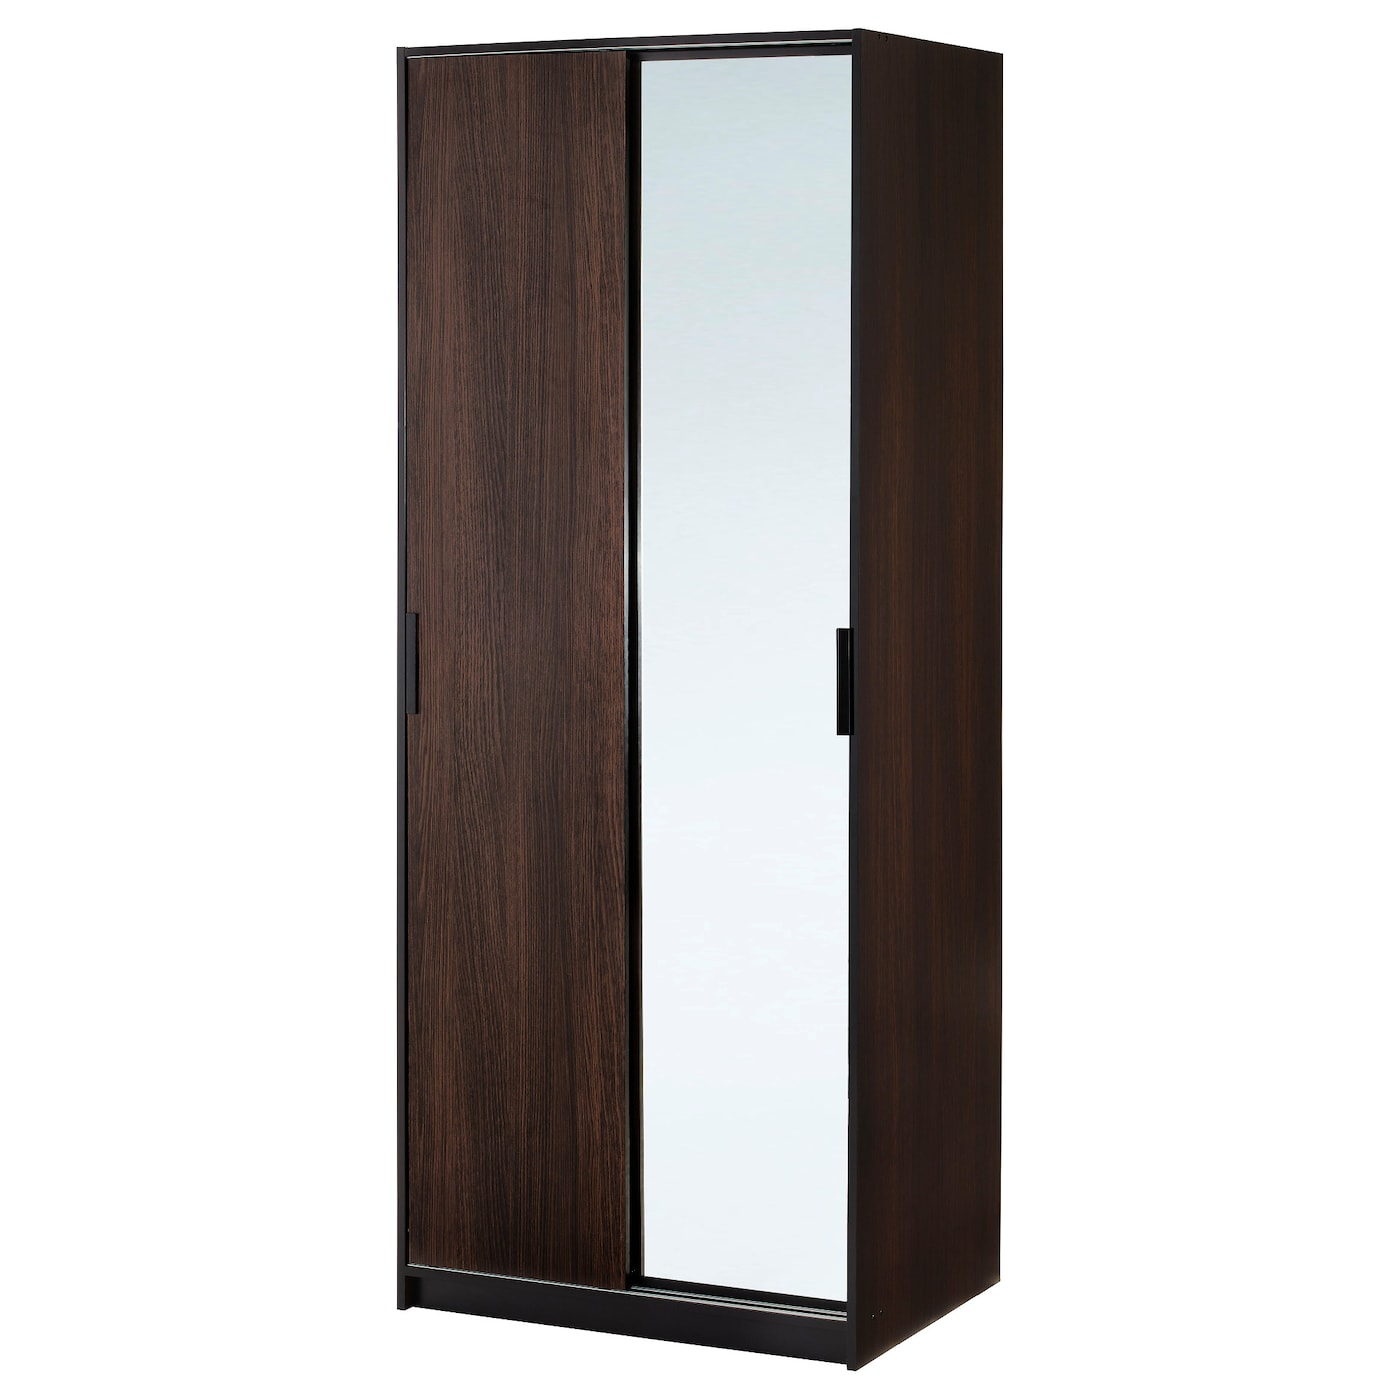 Trysil wardrobe w sliding doors 4 drawers white 118x61x202 for Miroir 160 x 50